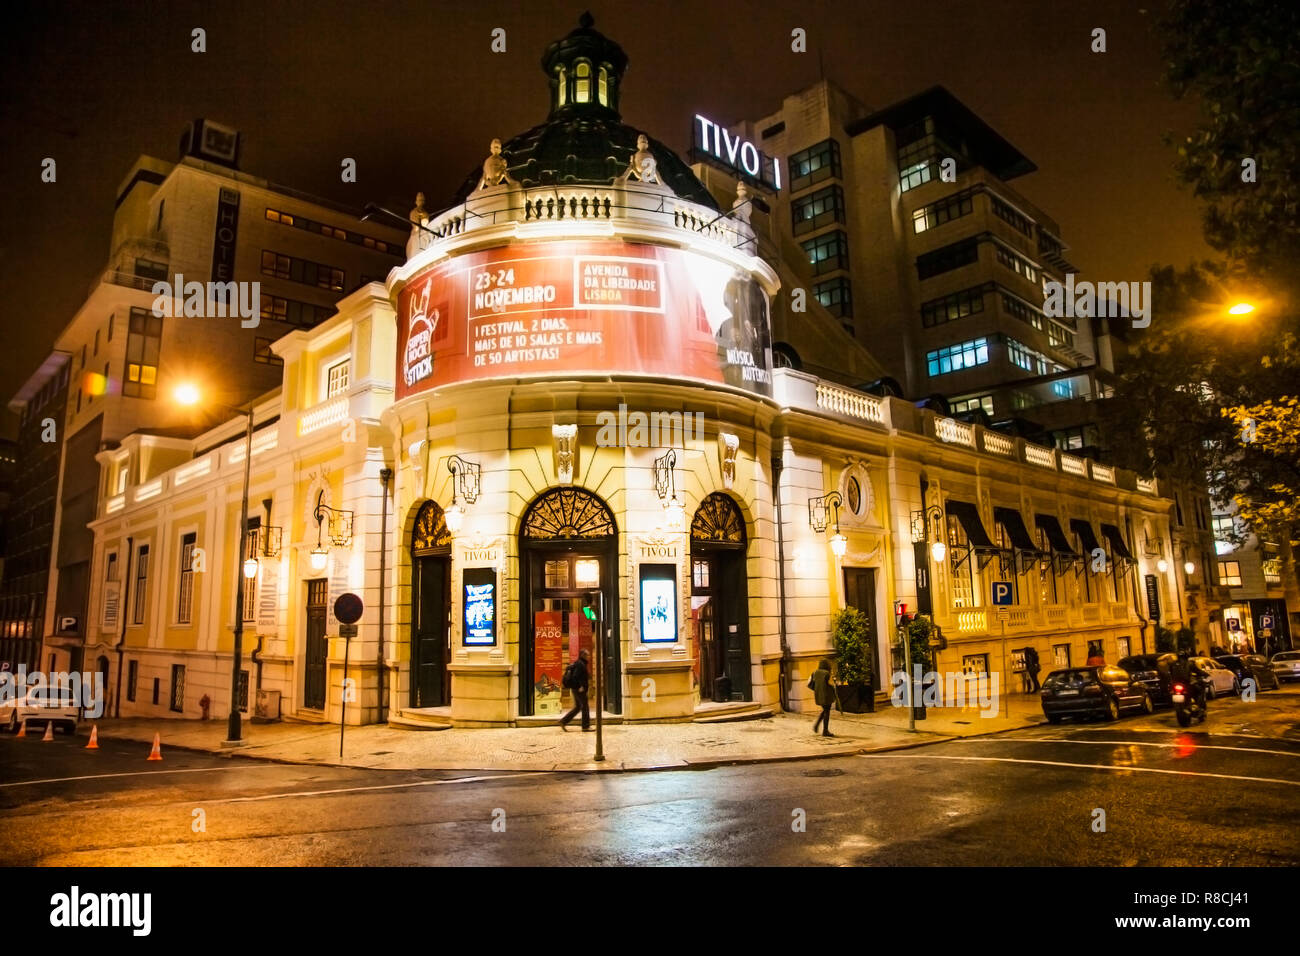 Tivoli Lisboa Lisbon Portugal 1920s Theater Stock Photos And 1920s Theater Stock Images